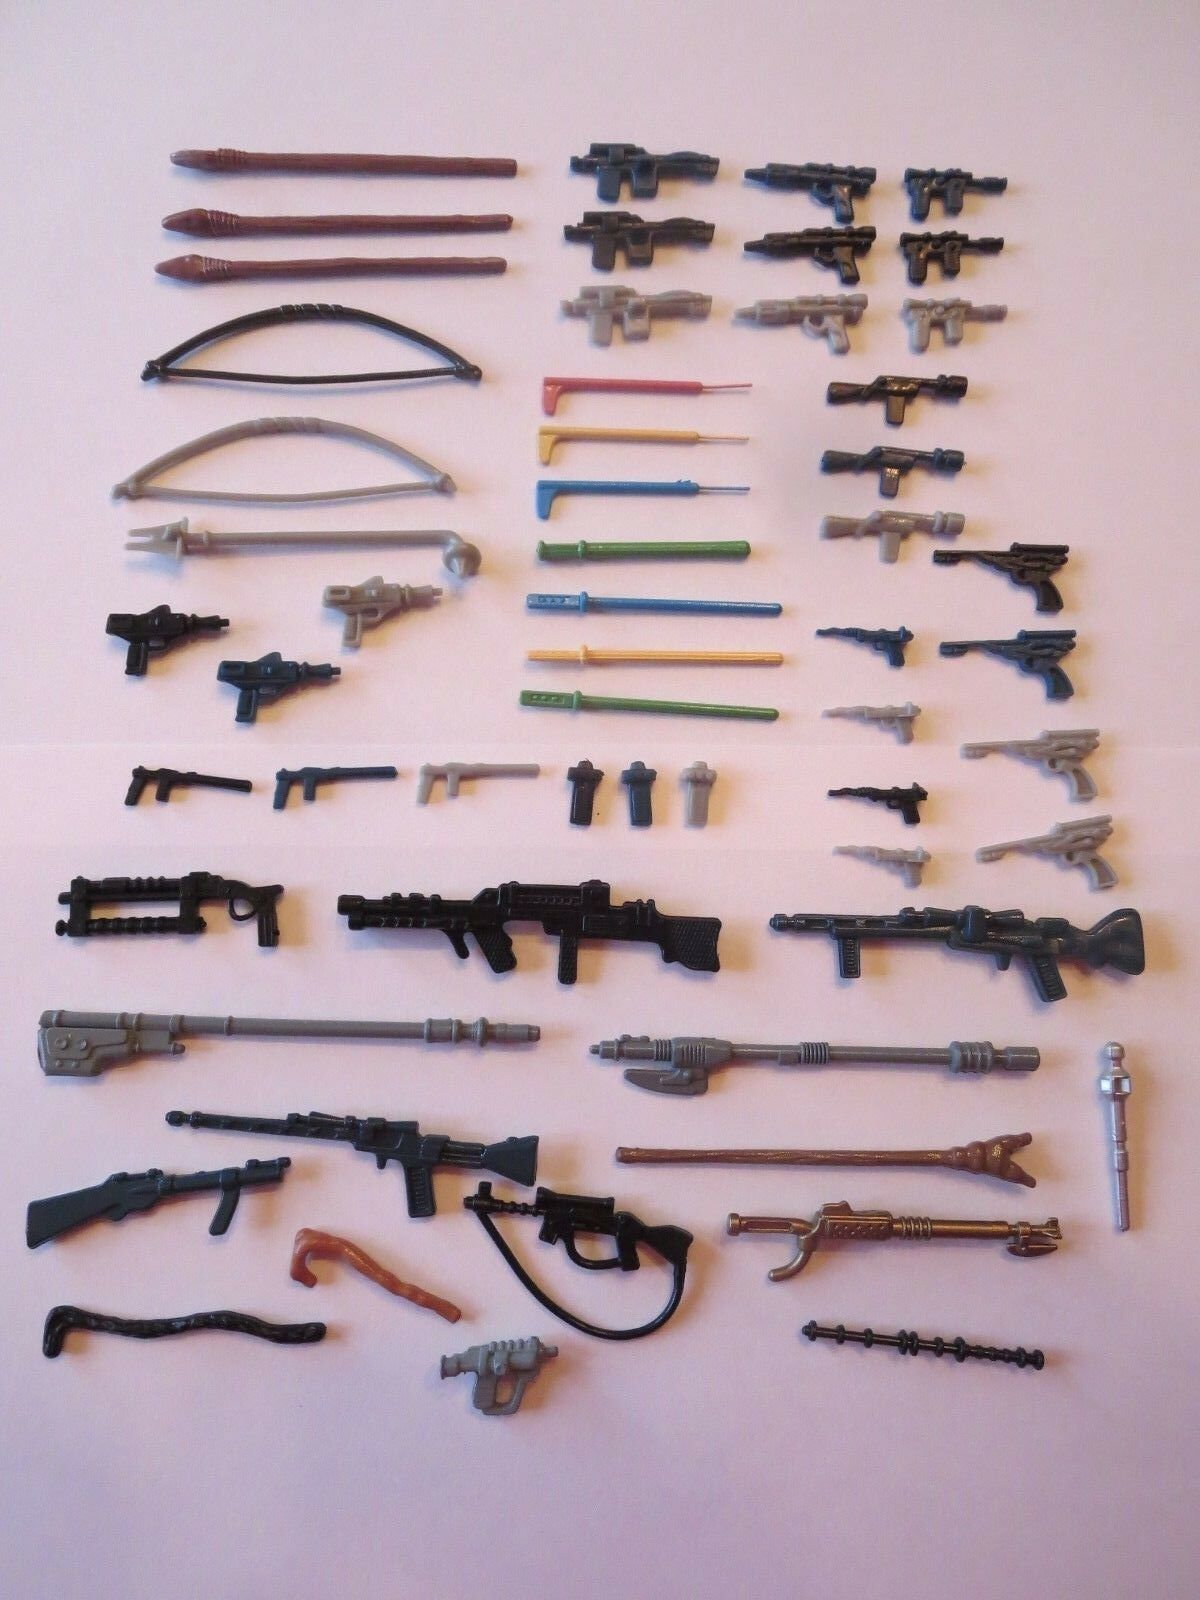 Lot of Star Wars Weapons blueesnagman Repros 57 57 57 Pieces 2dffcf